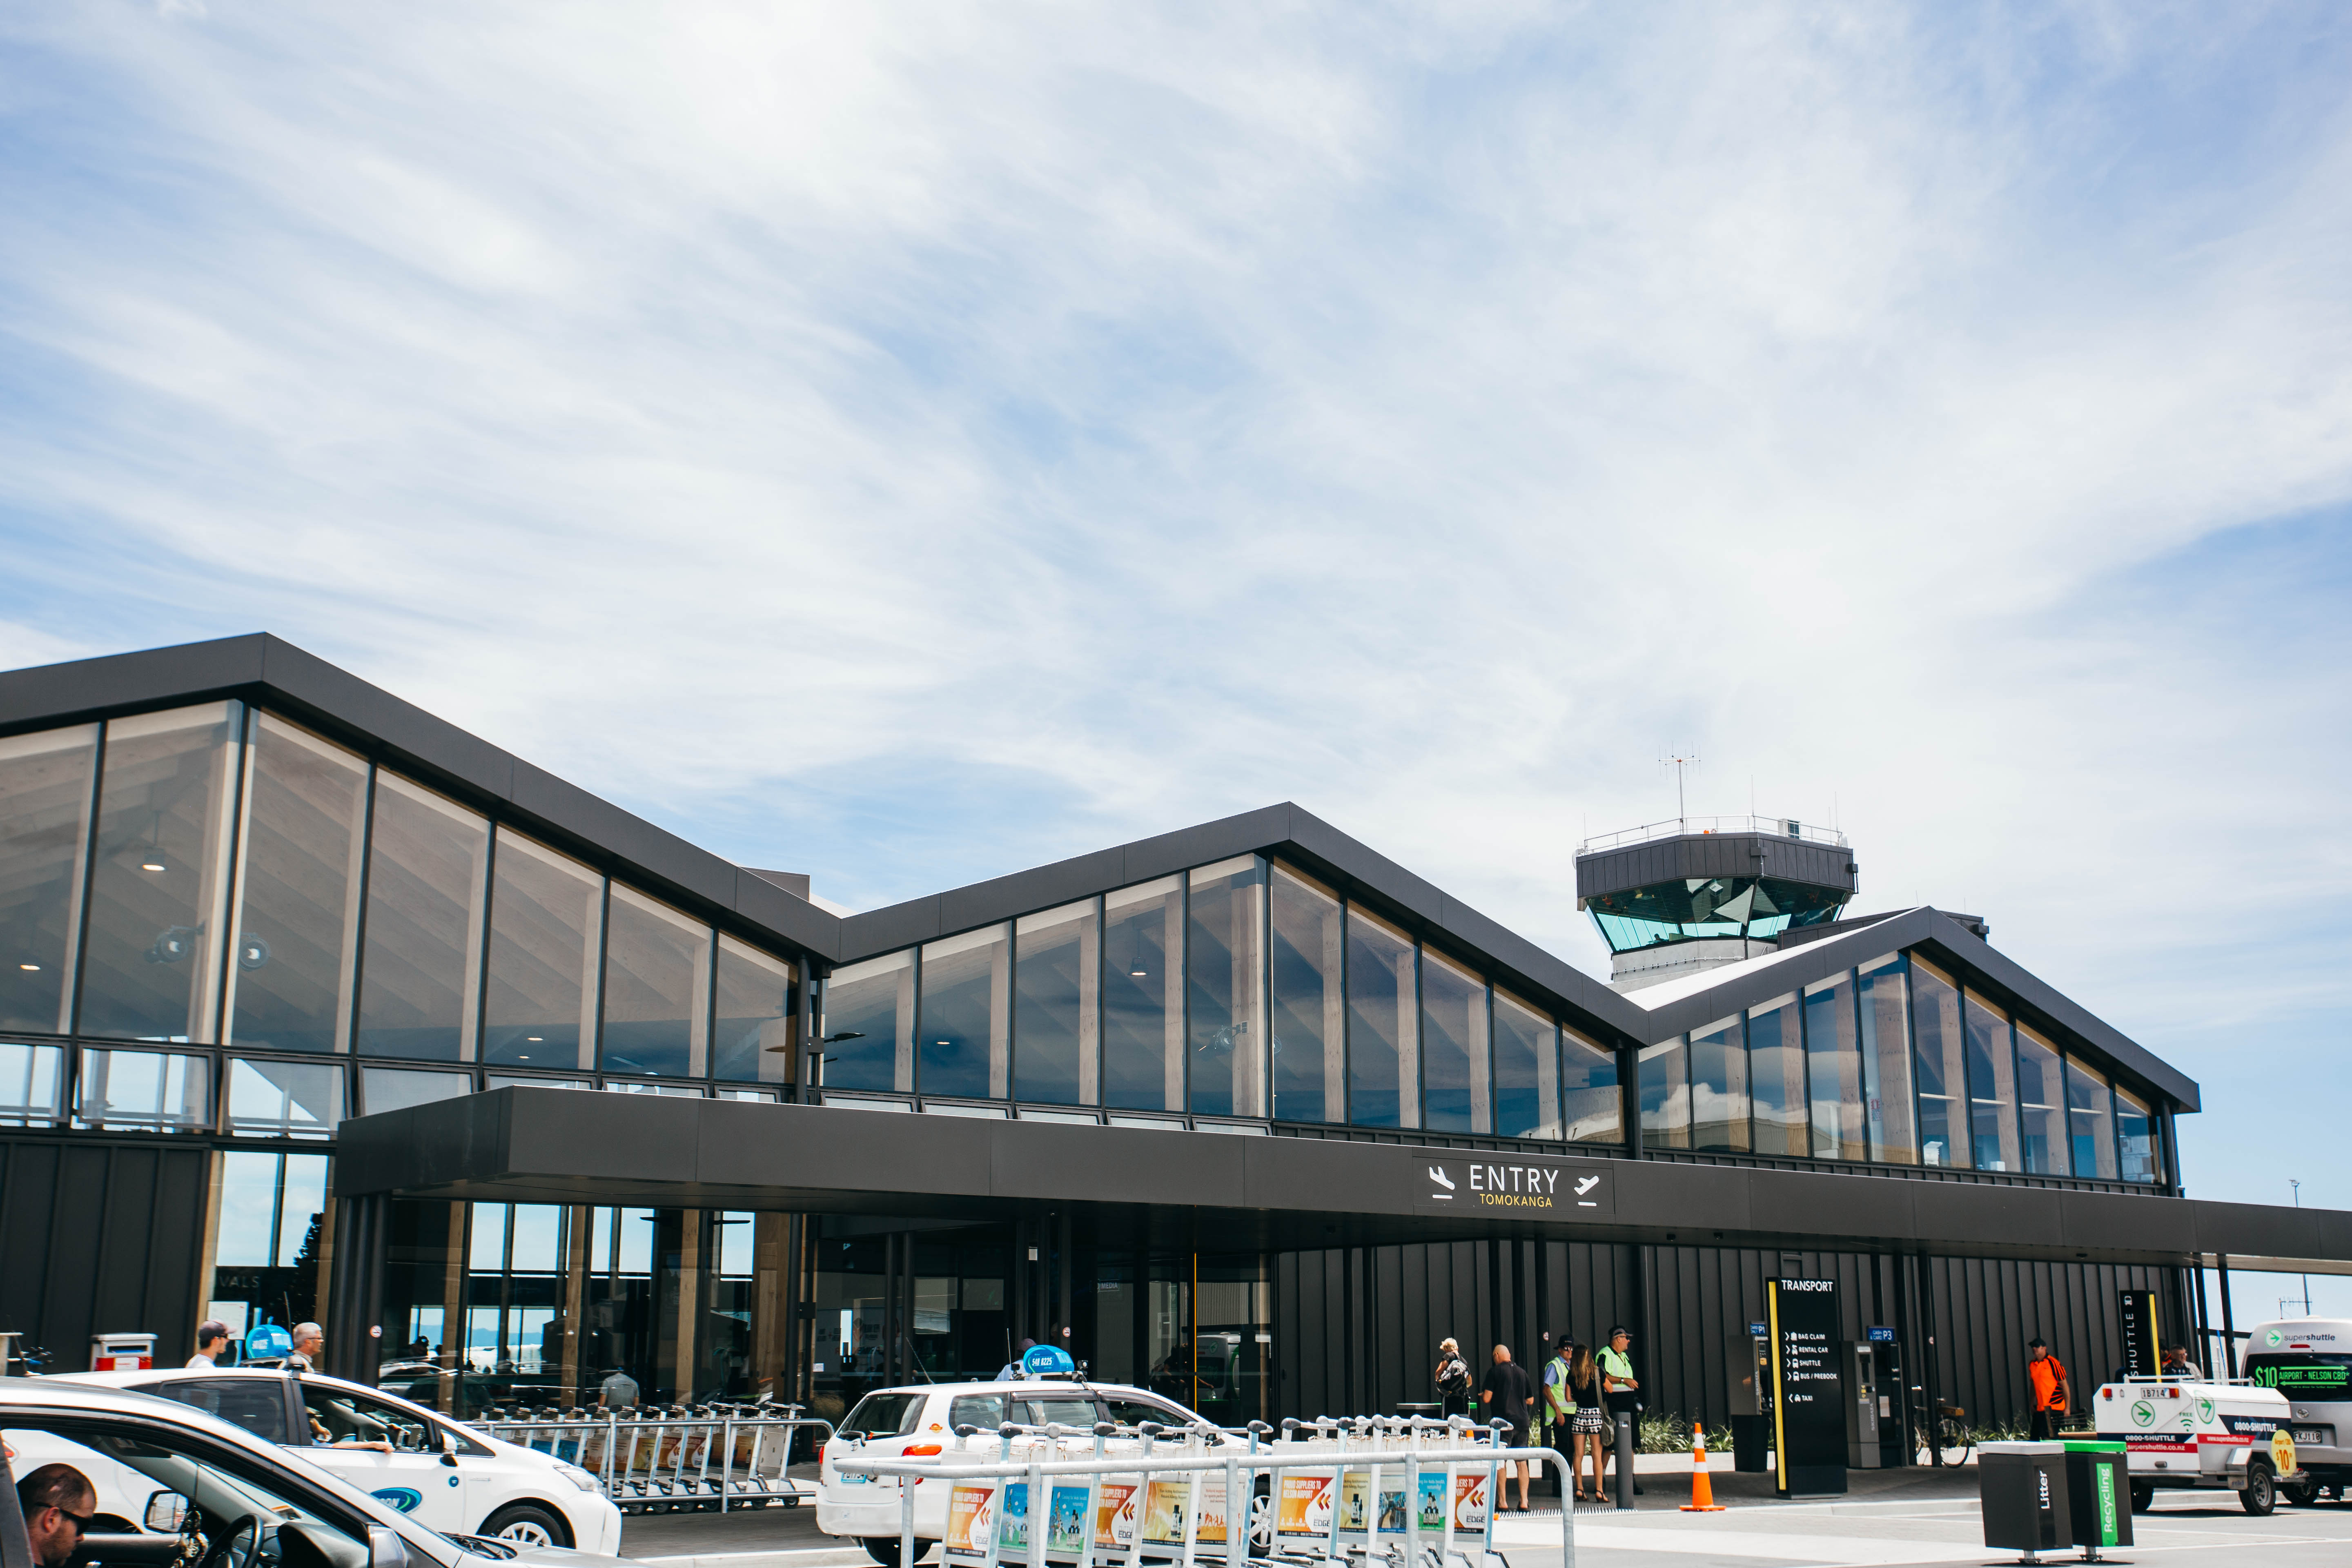 Nelson Airport Entrance